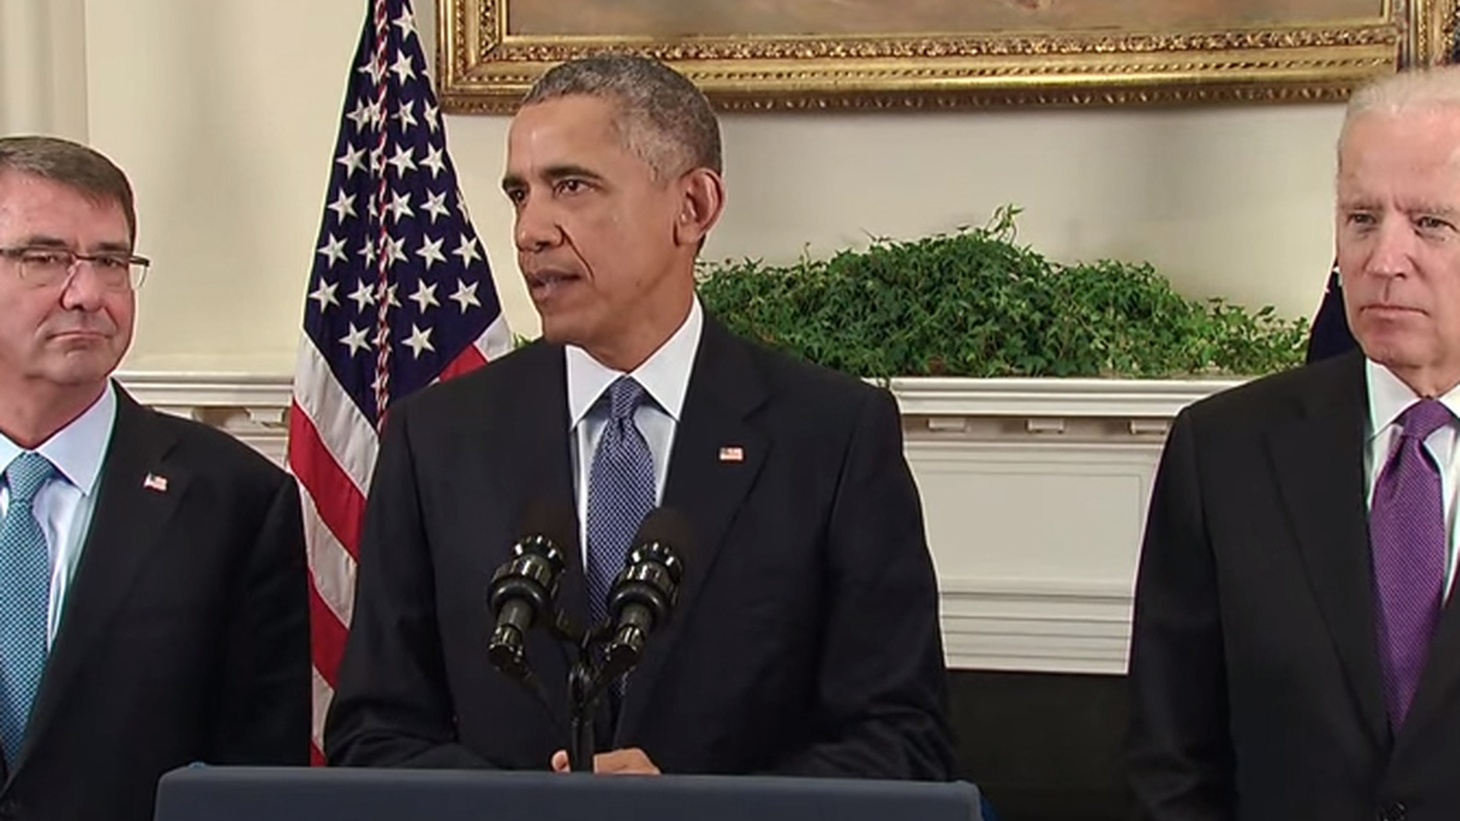 Obama announces we will not withdraw from Afghanistan after all.